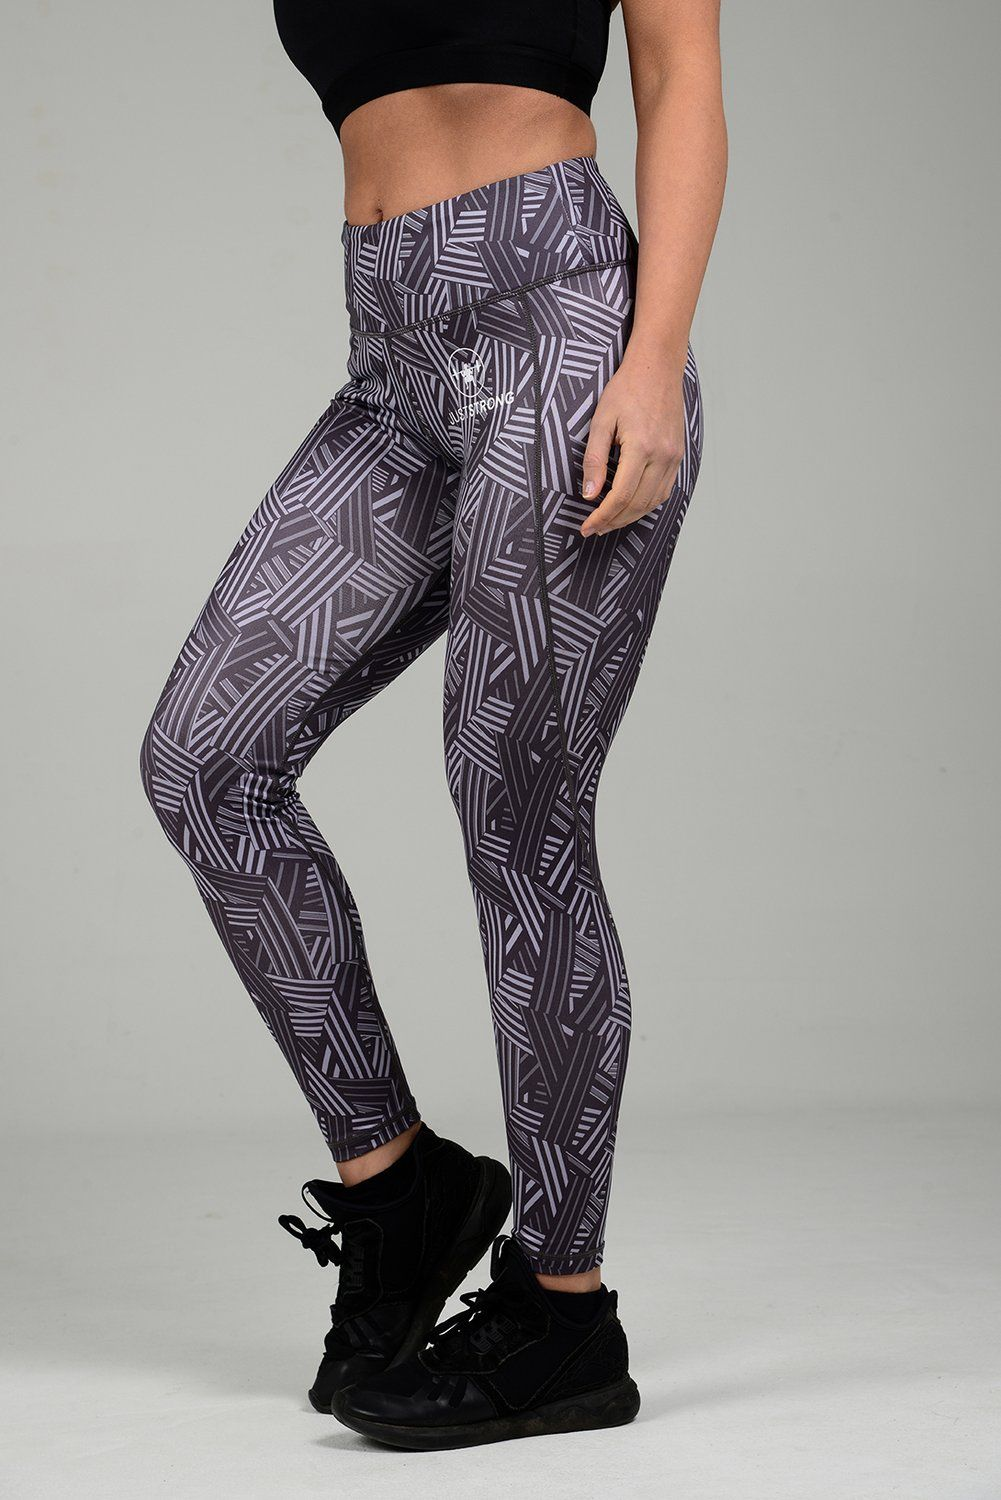 017942e678036 CHARCOAL CROSSLINE JUST STRONG LEGGINGS -  48.81 - Order now from  JustStrong. The women s performance